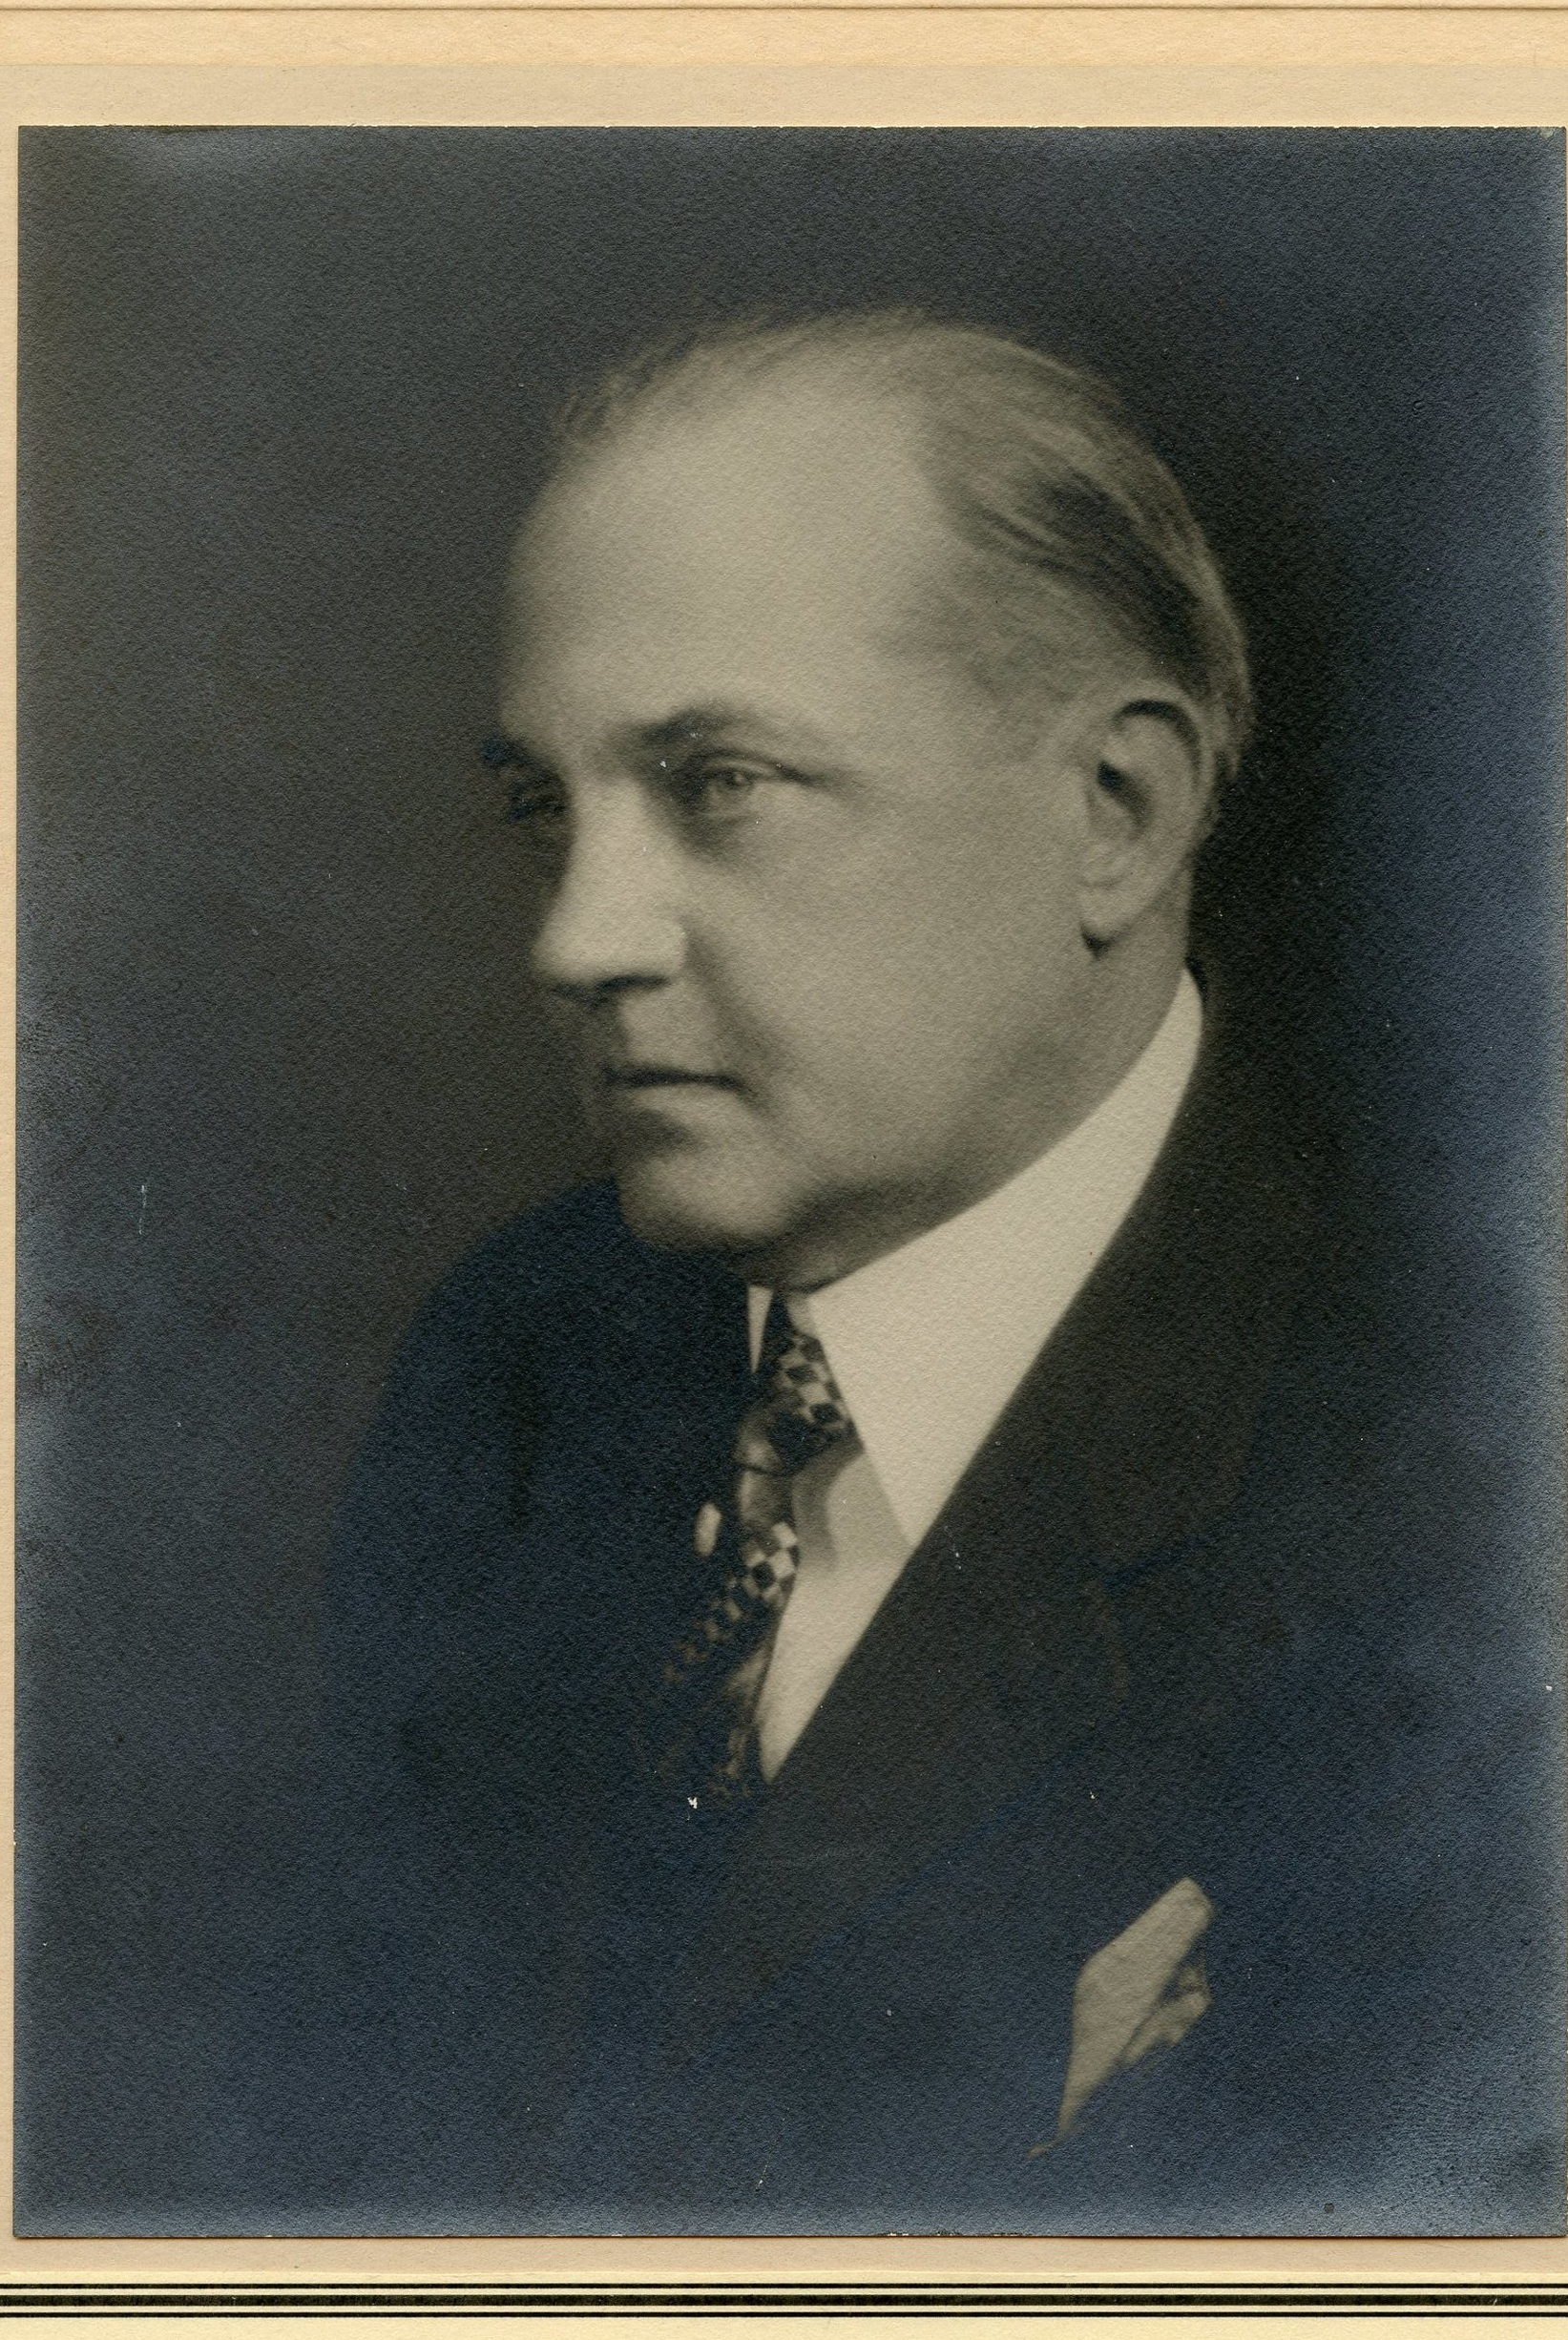 Henry Forster Marx - First director of Easton Library in 1902 and founder of historical society